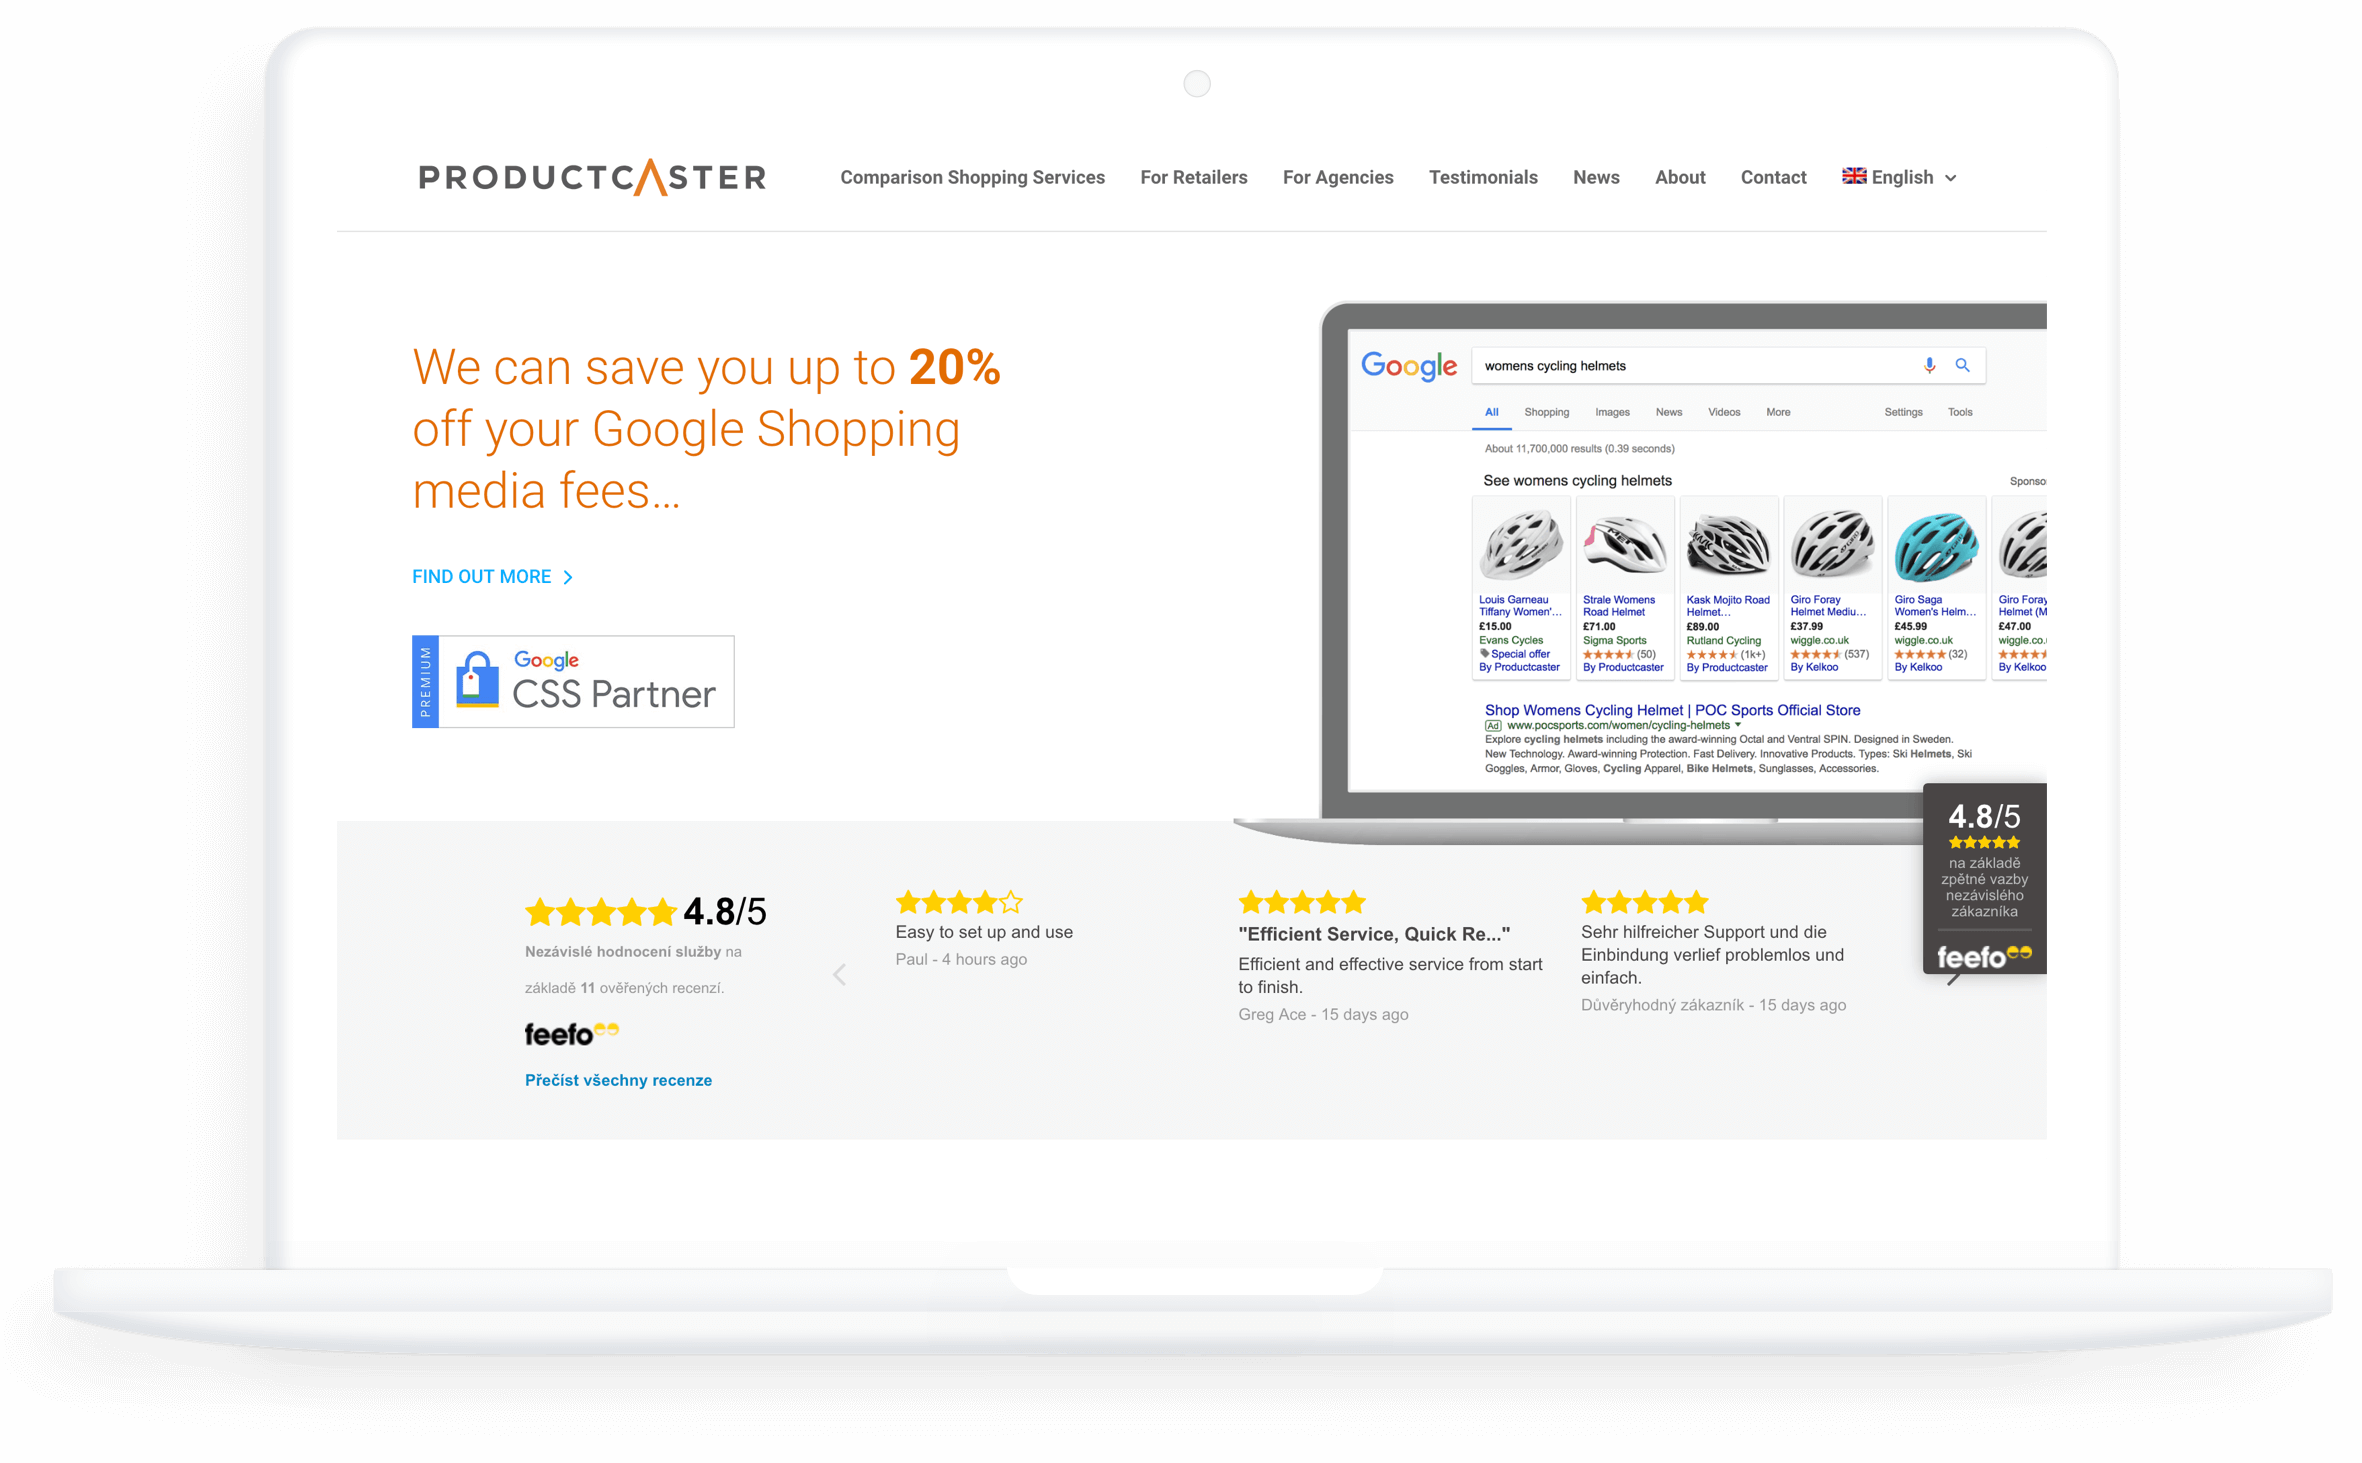 Productcaster_2.png